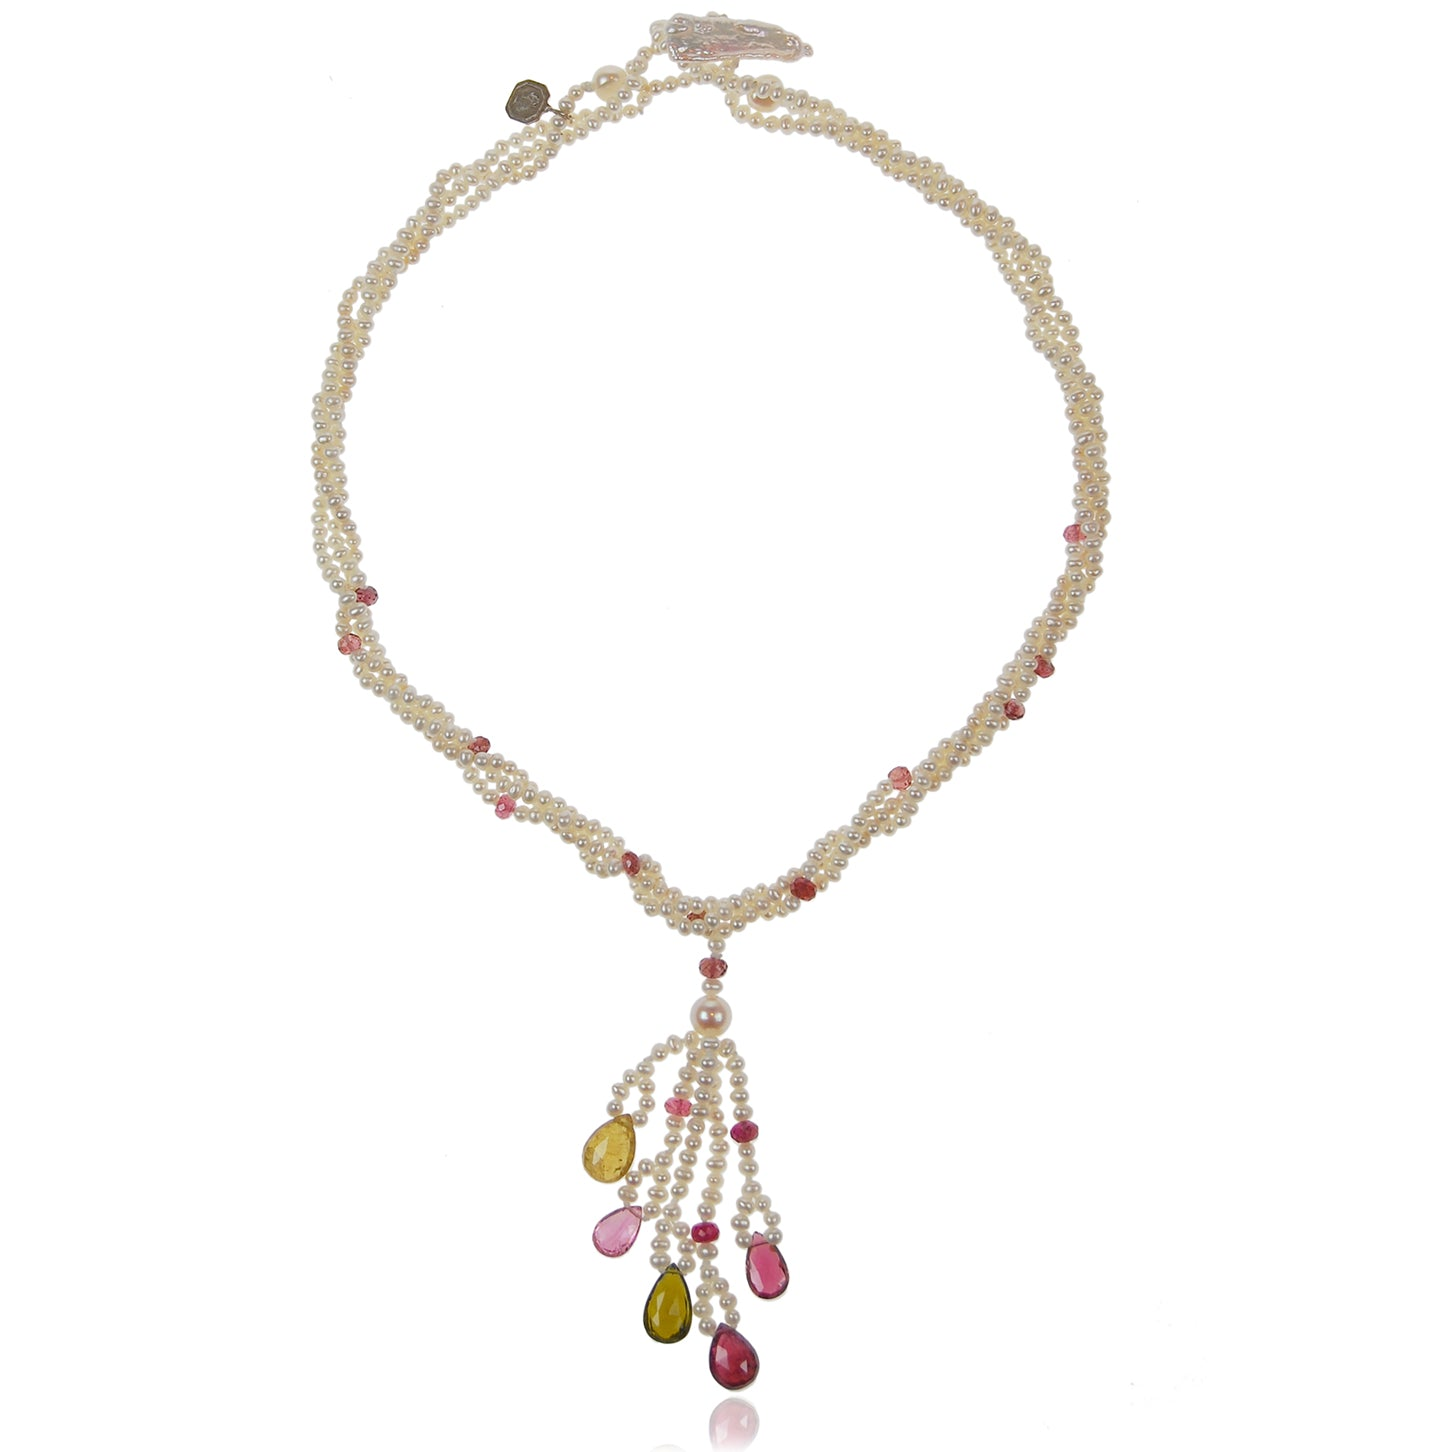 Freshwater Pearl and Tourmaline Tassel Necklace